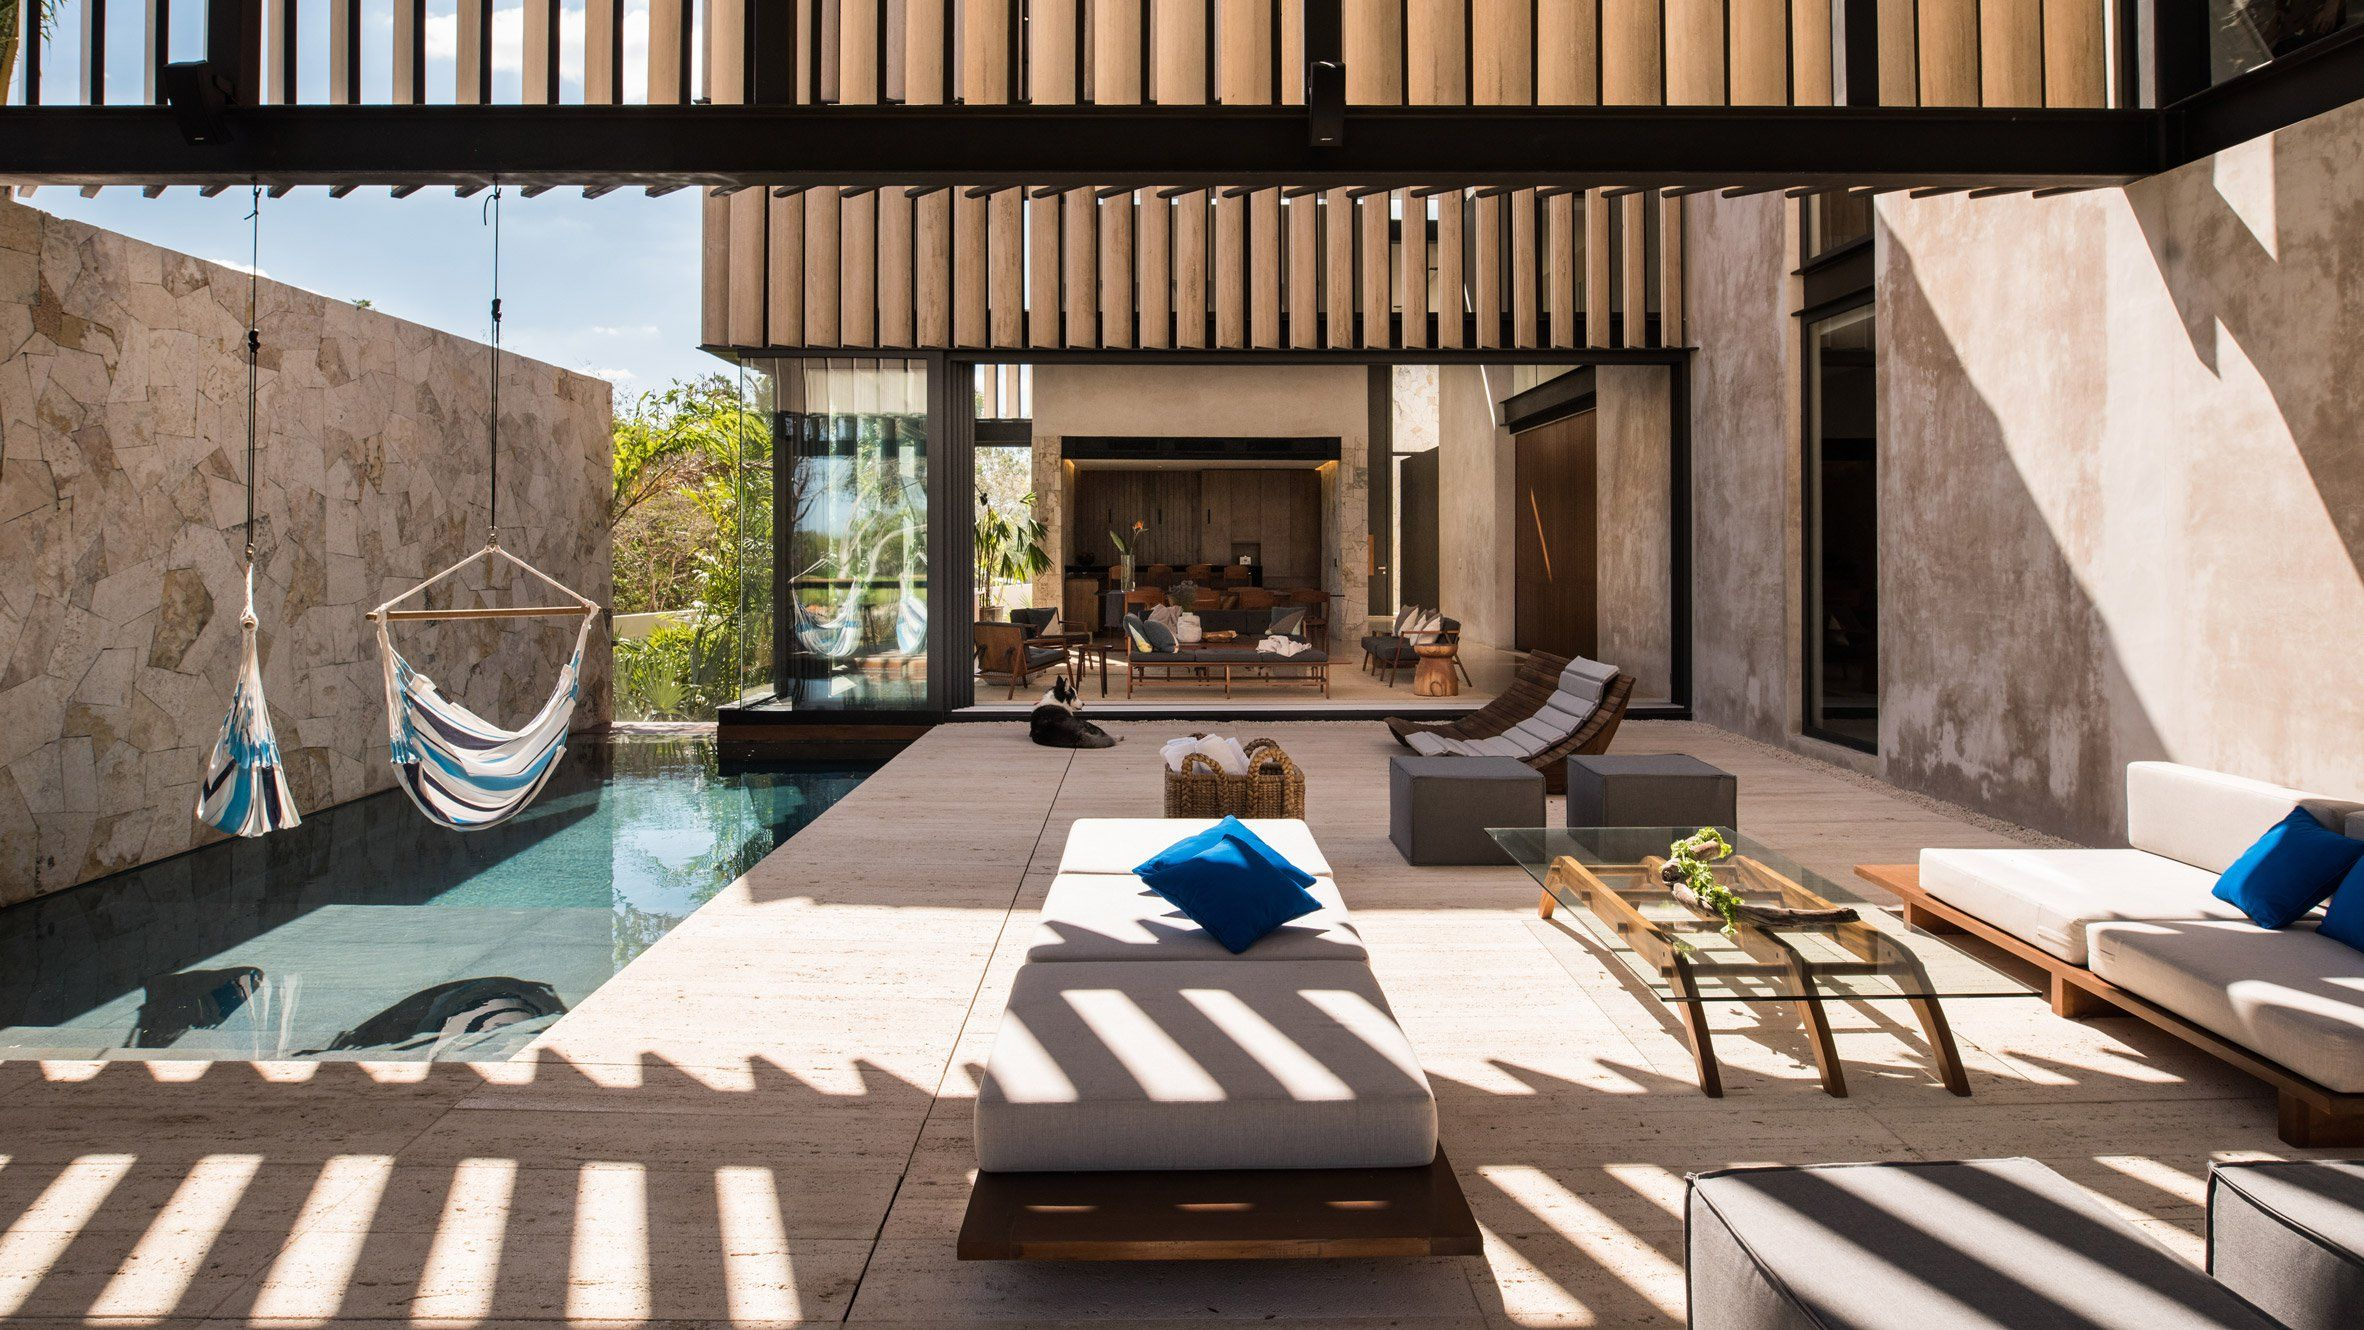 elevated walls with marble slats form a canopy above the terrace and swimming pool of this